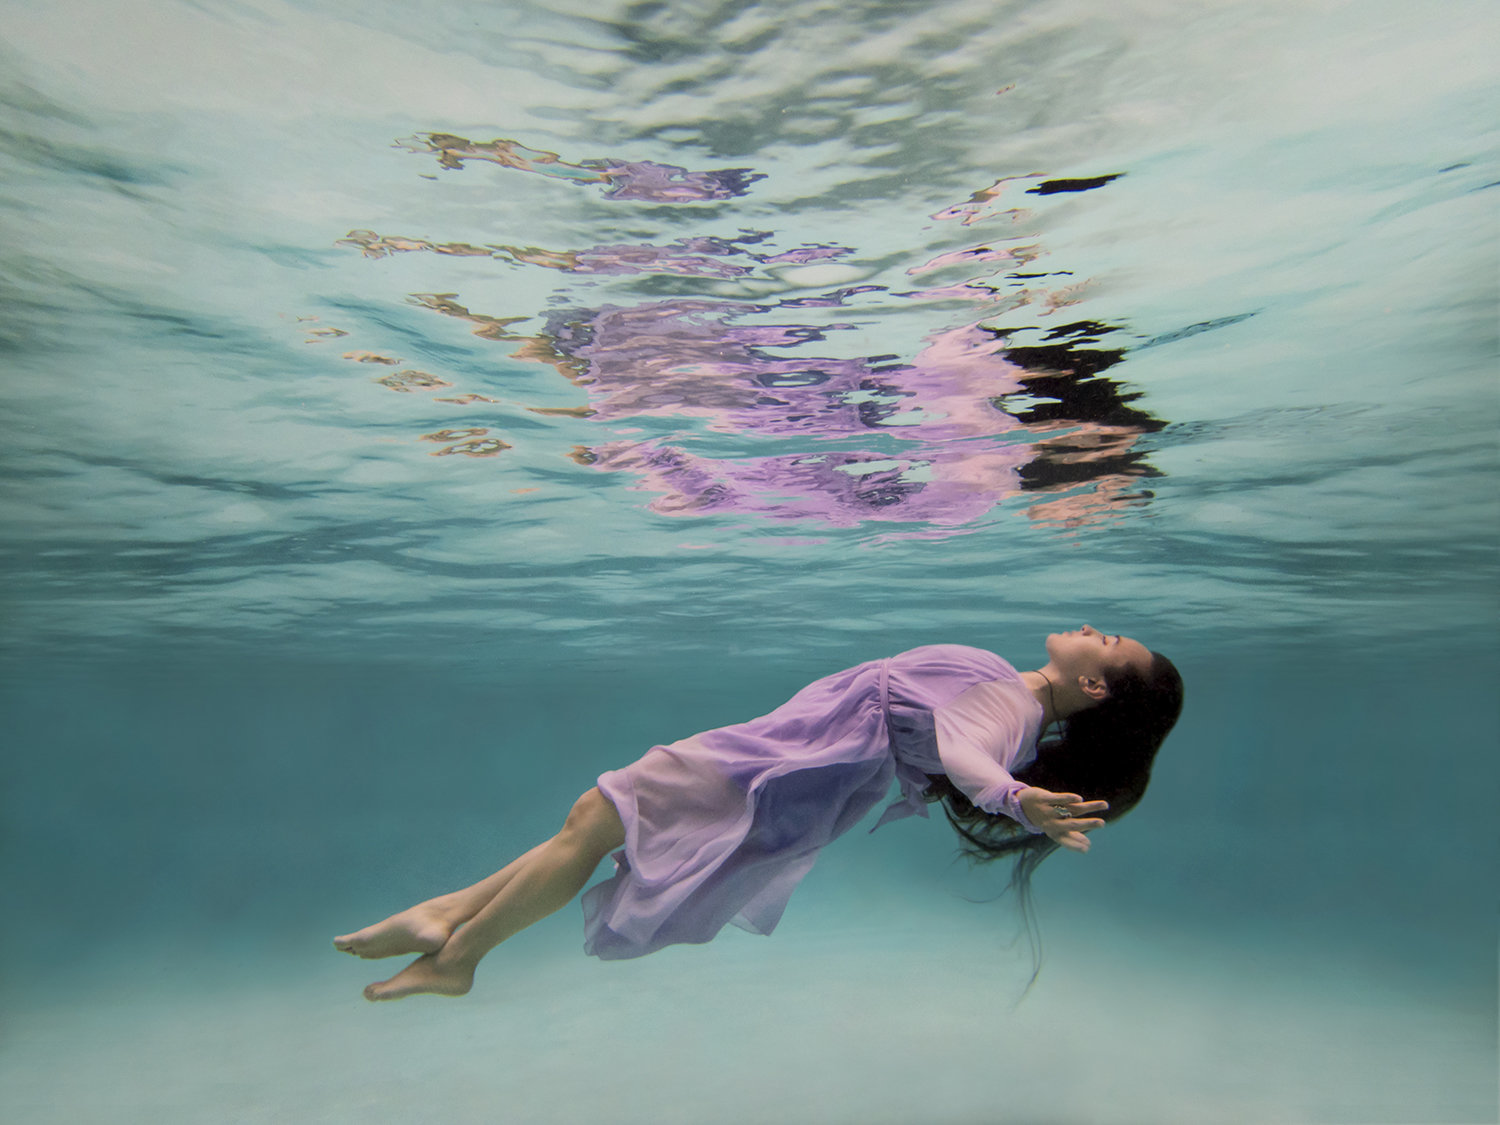 underwater portrait photographer denver colorado